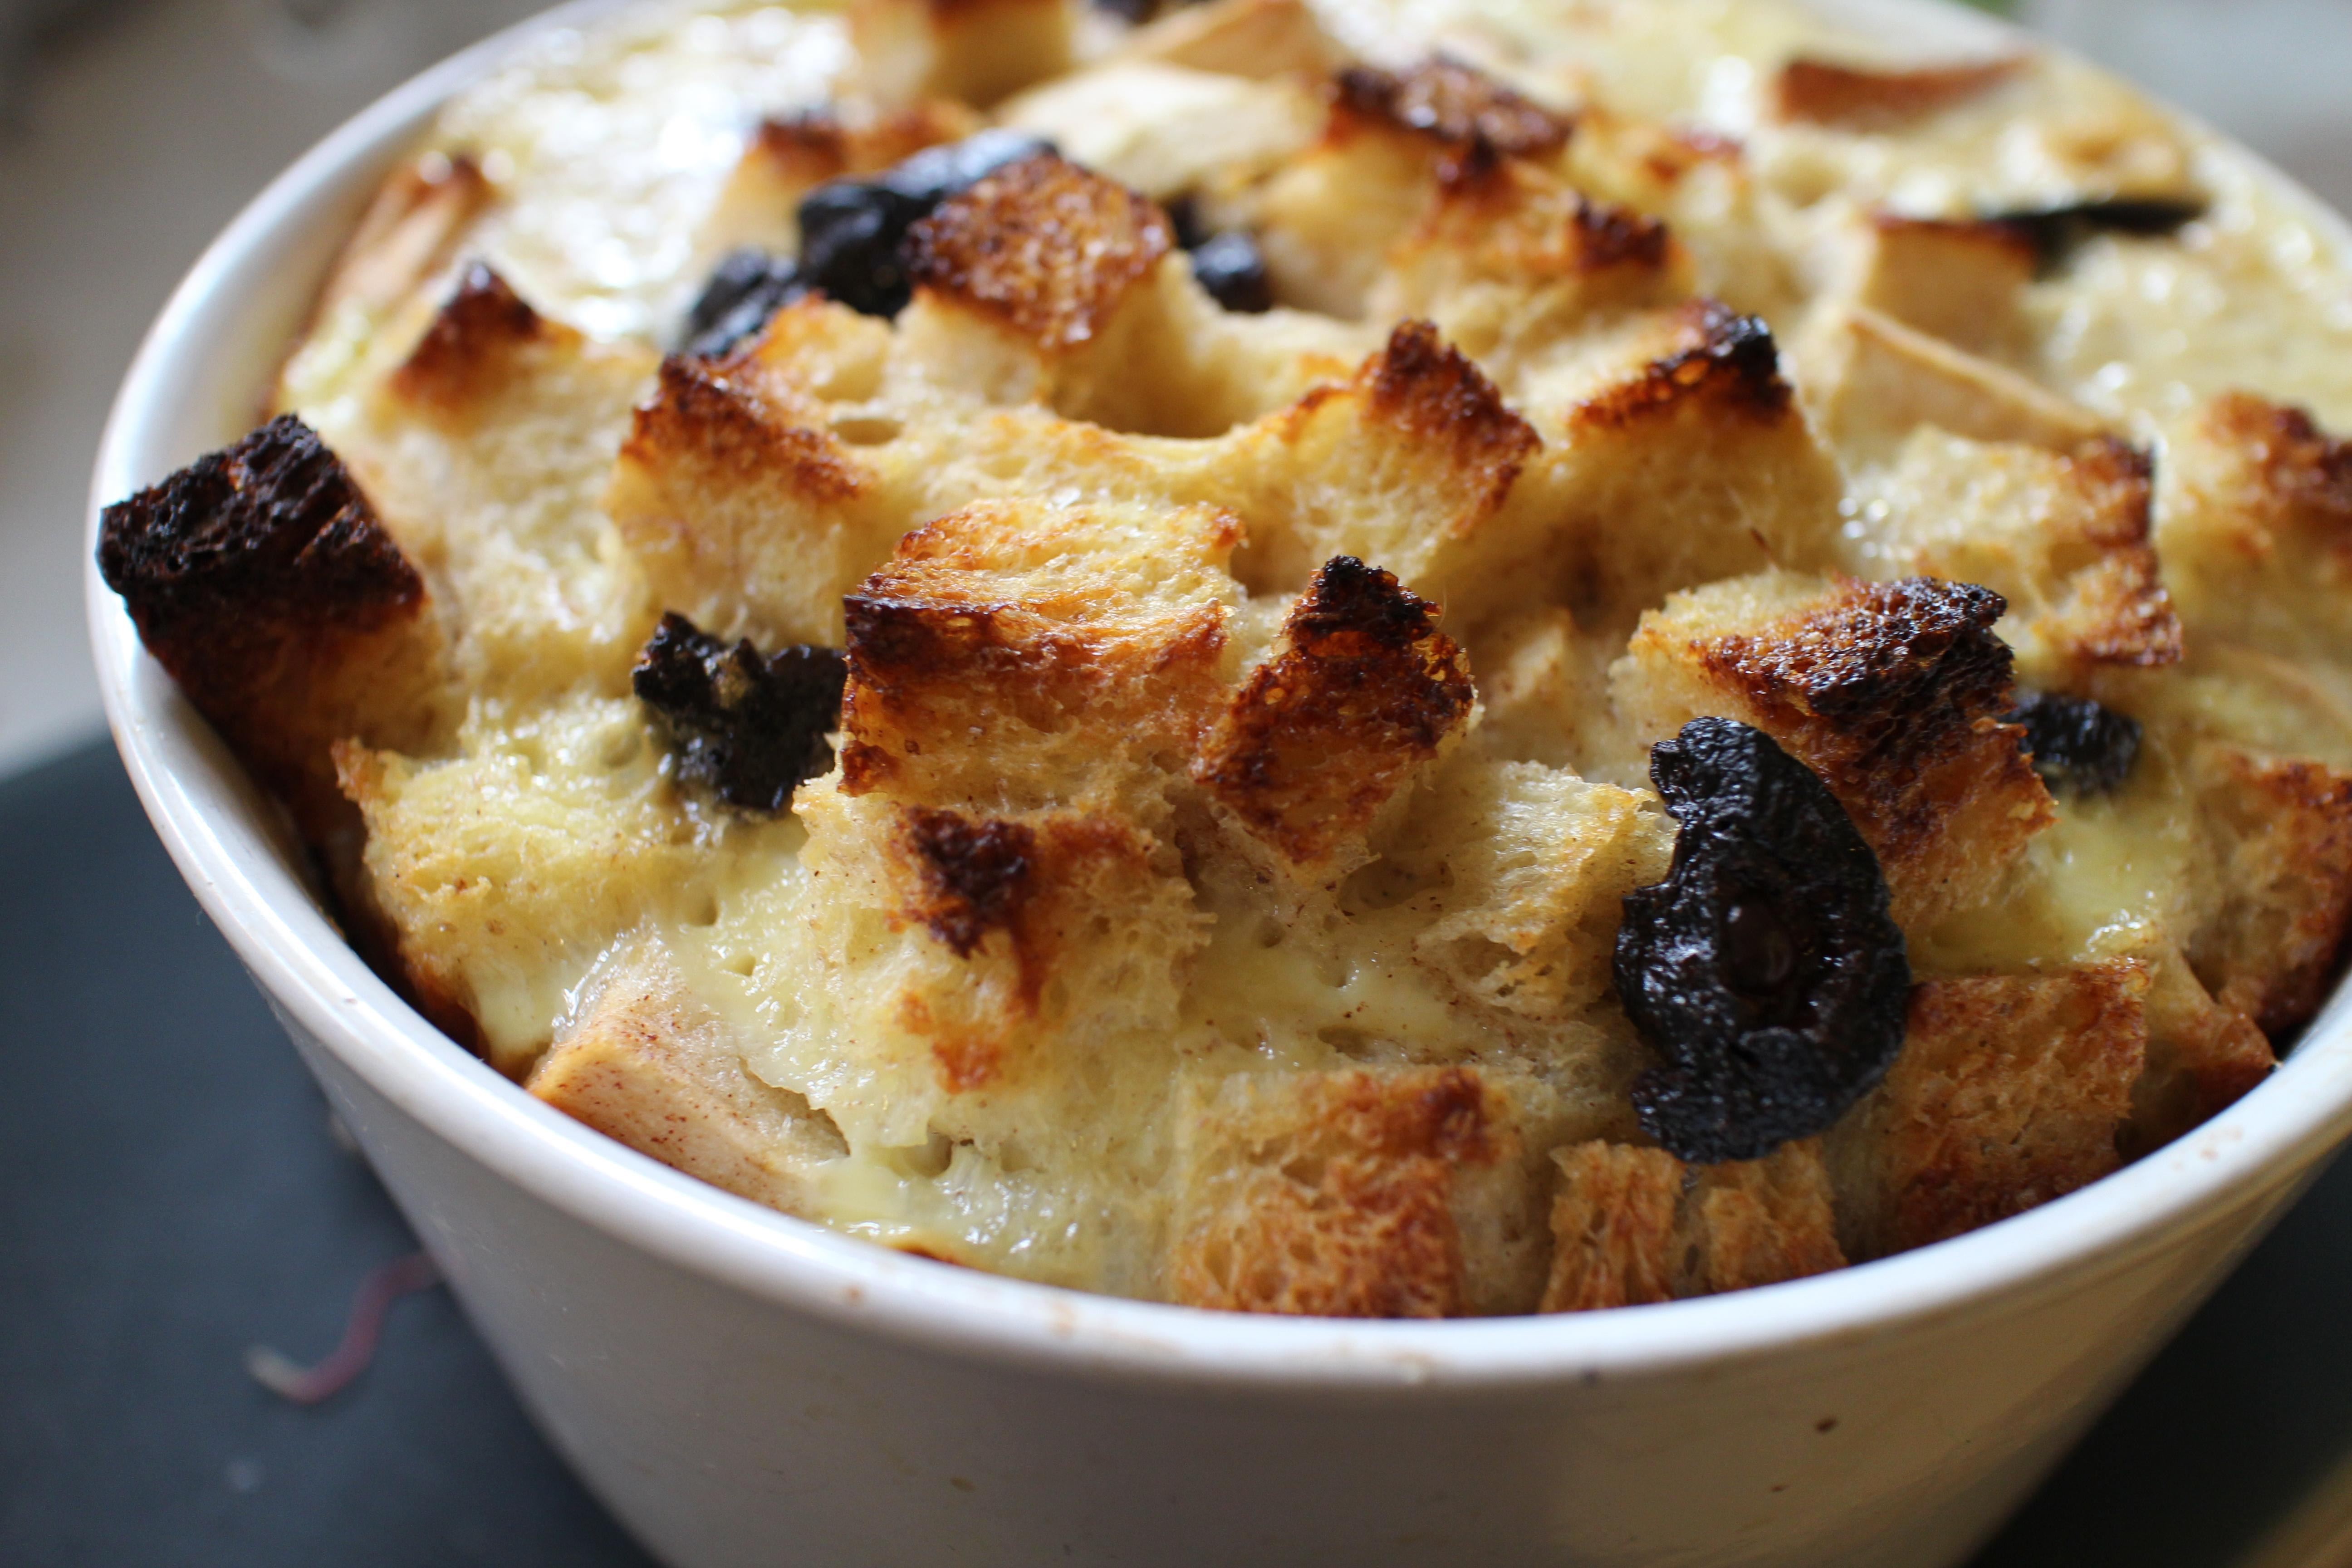 Bread pudding | Prospect: The Pantry